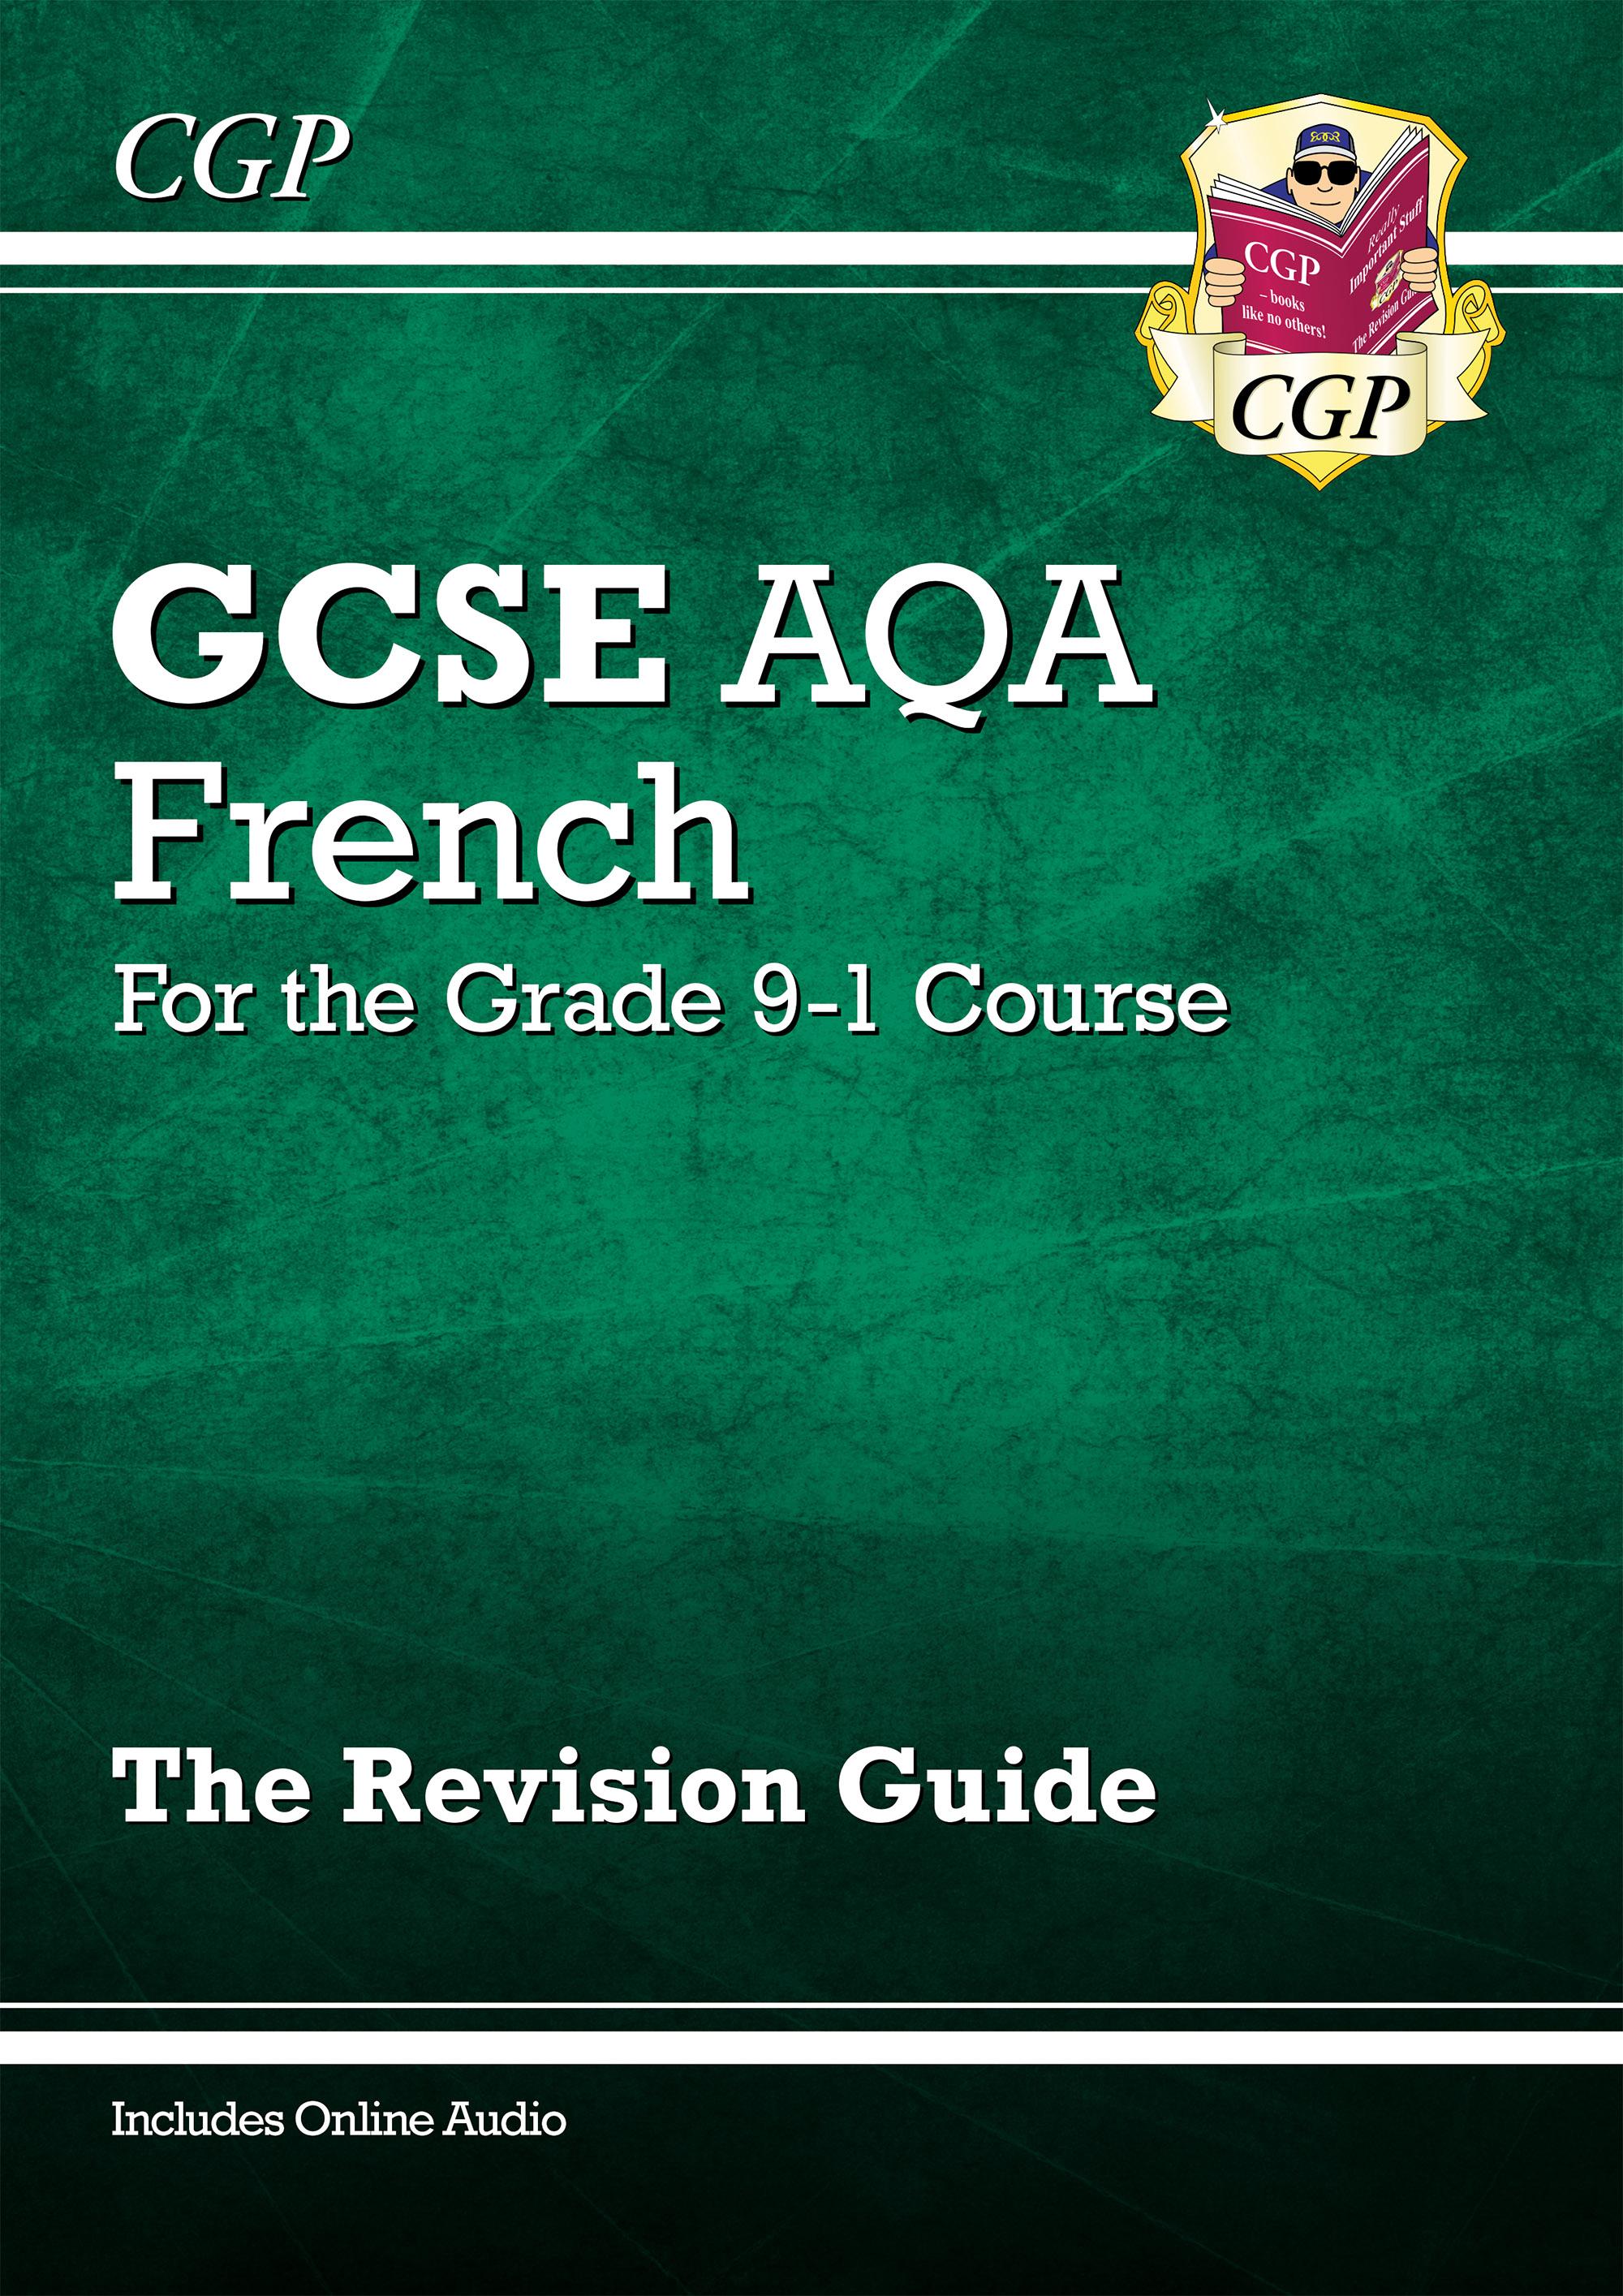 FAR44DK - New GCSE French AQA Revision Guide - for the Grade 9-1 Course